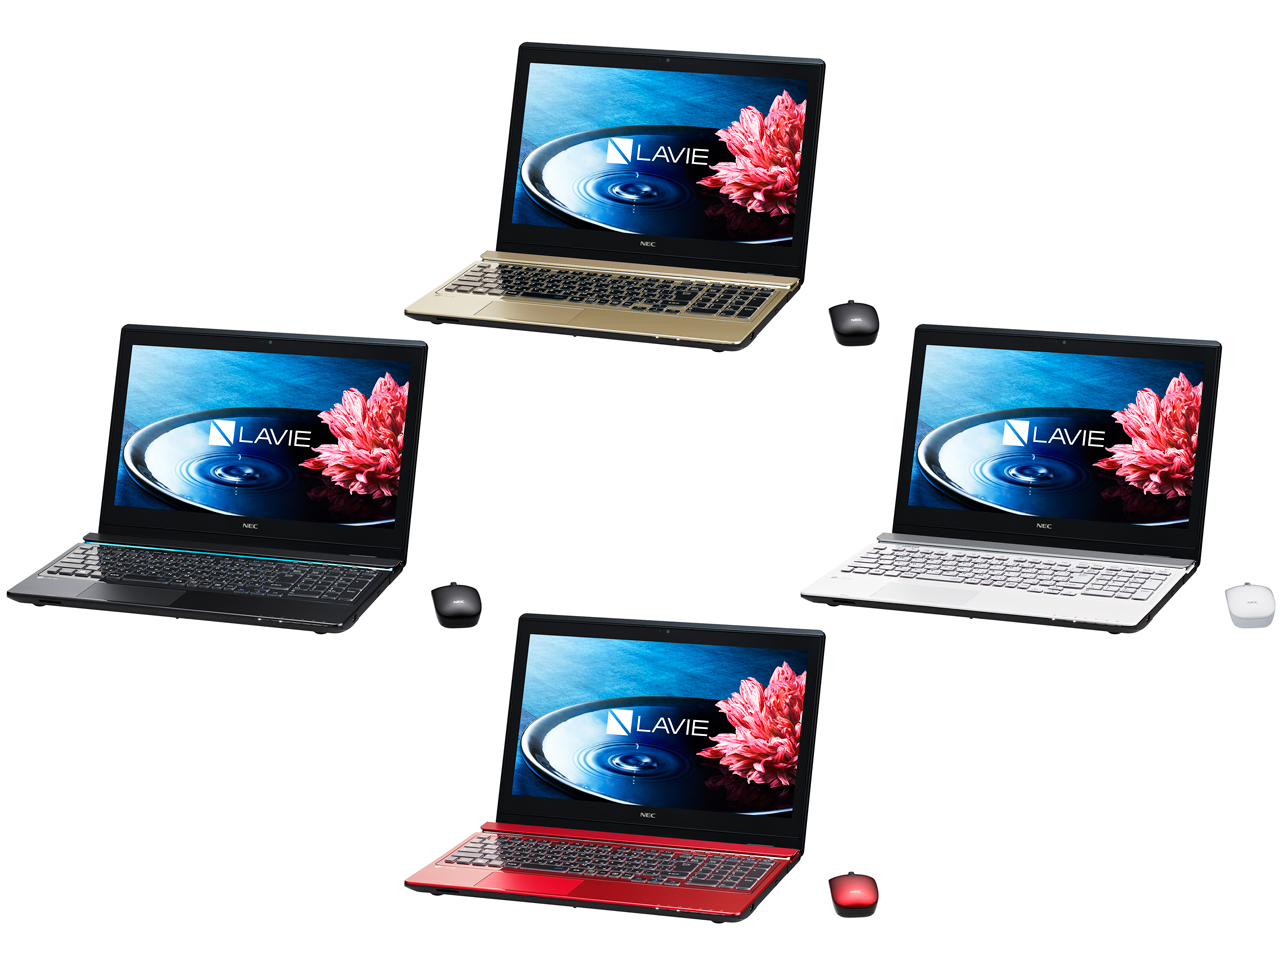 �w�J���[�o���G�[�V�����x LAVIE Note Standard NS750/BAB PC-NS750BAB [�N���X�^���u���b�N] �̐��i�摜